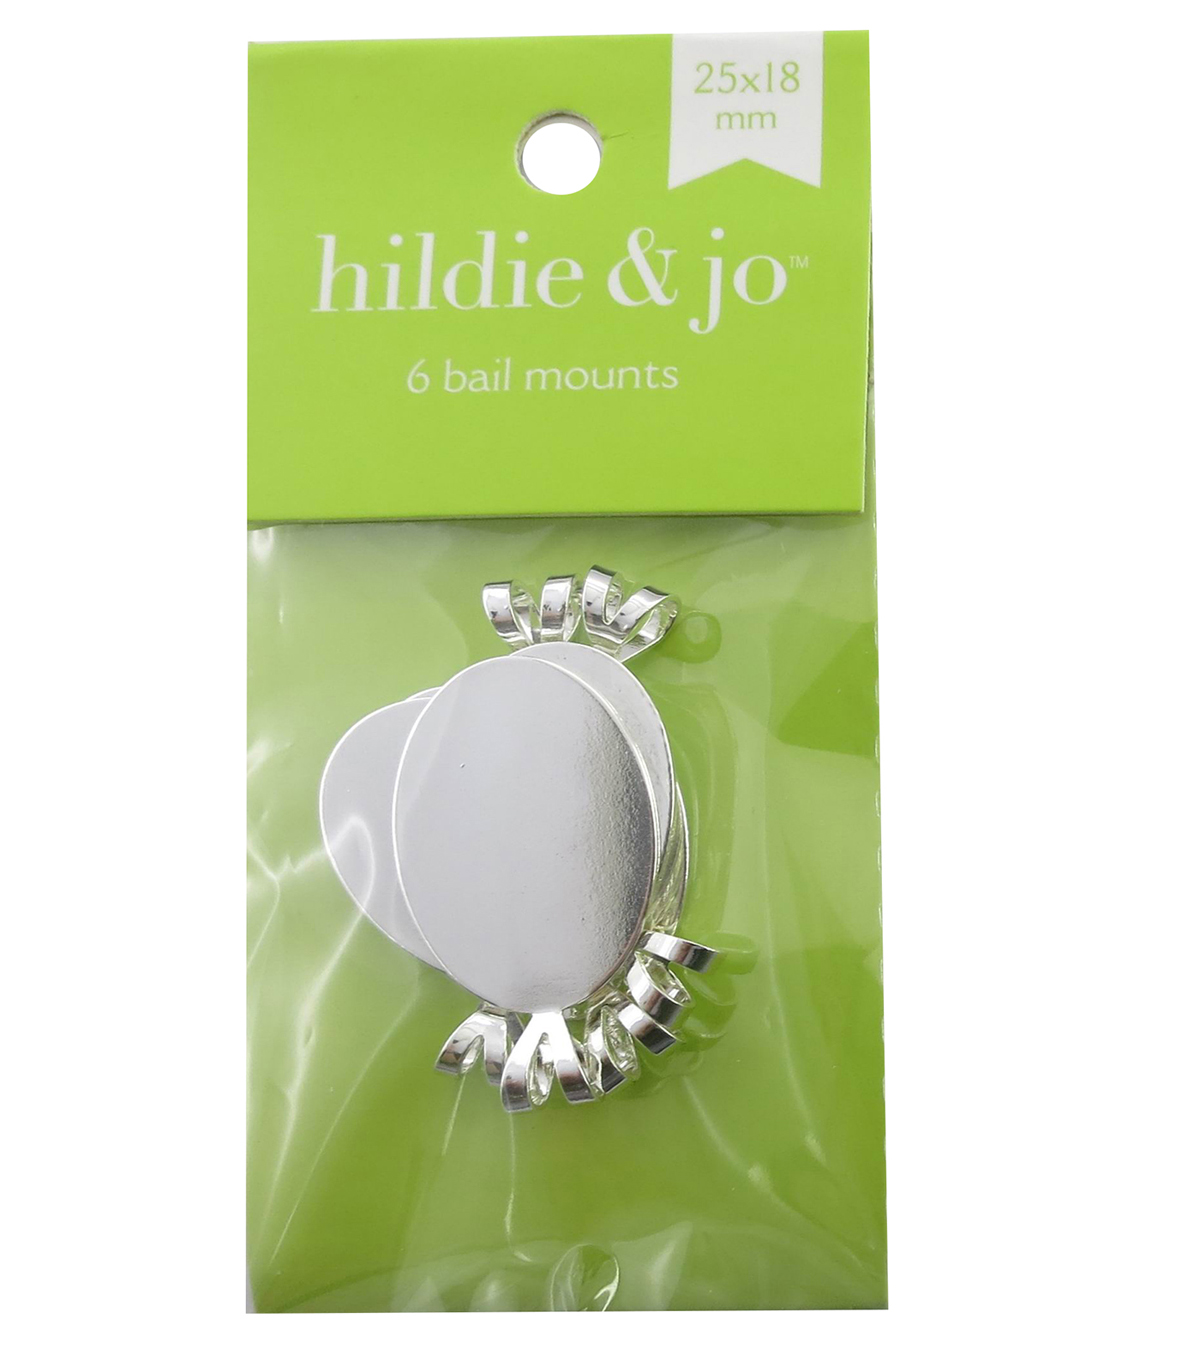 hildie & jo 6 Pack 25mmx18mm Oval Silver Bail Mounts